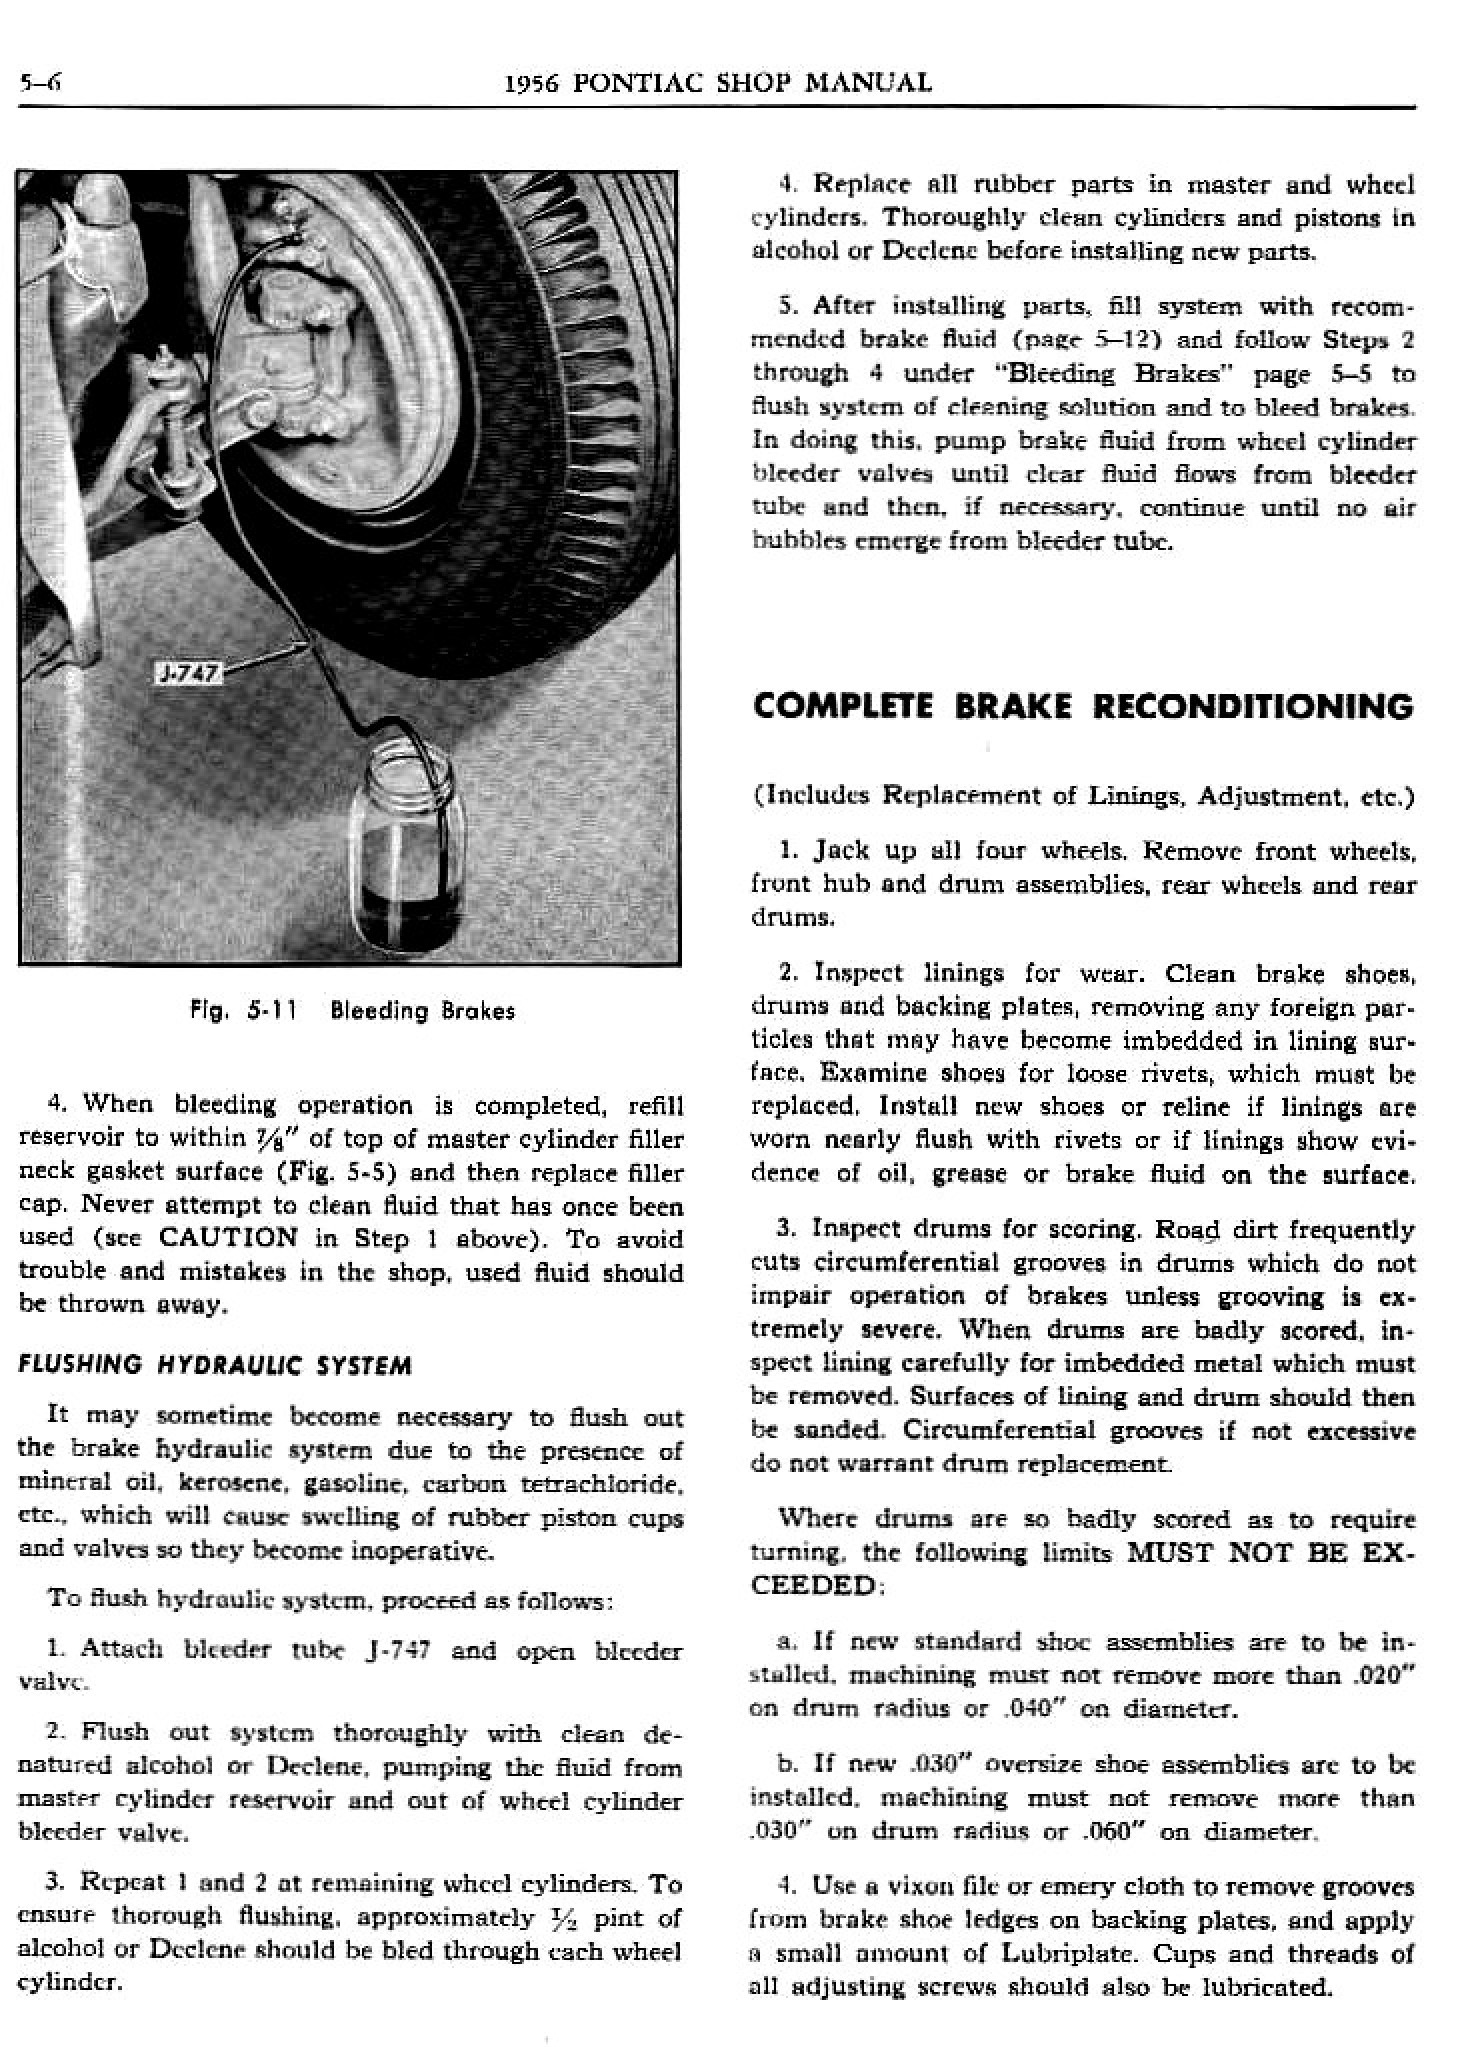 1956 Pontiac Shop Manual- Brakes Page 7 of 49